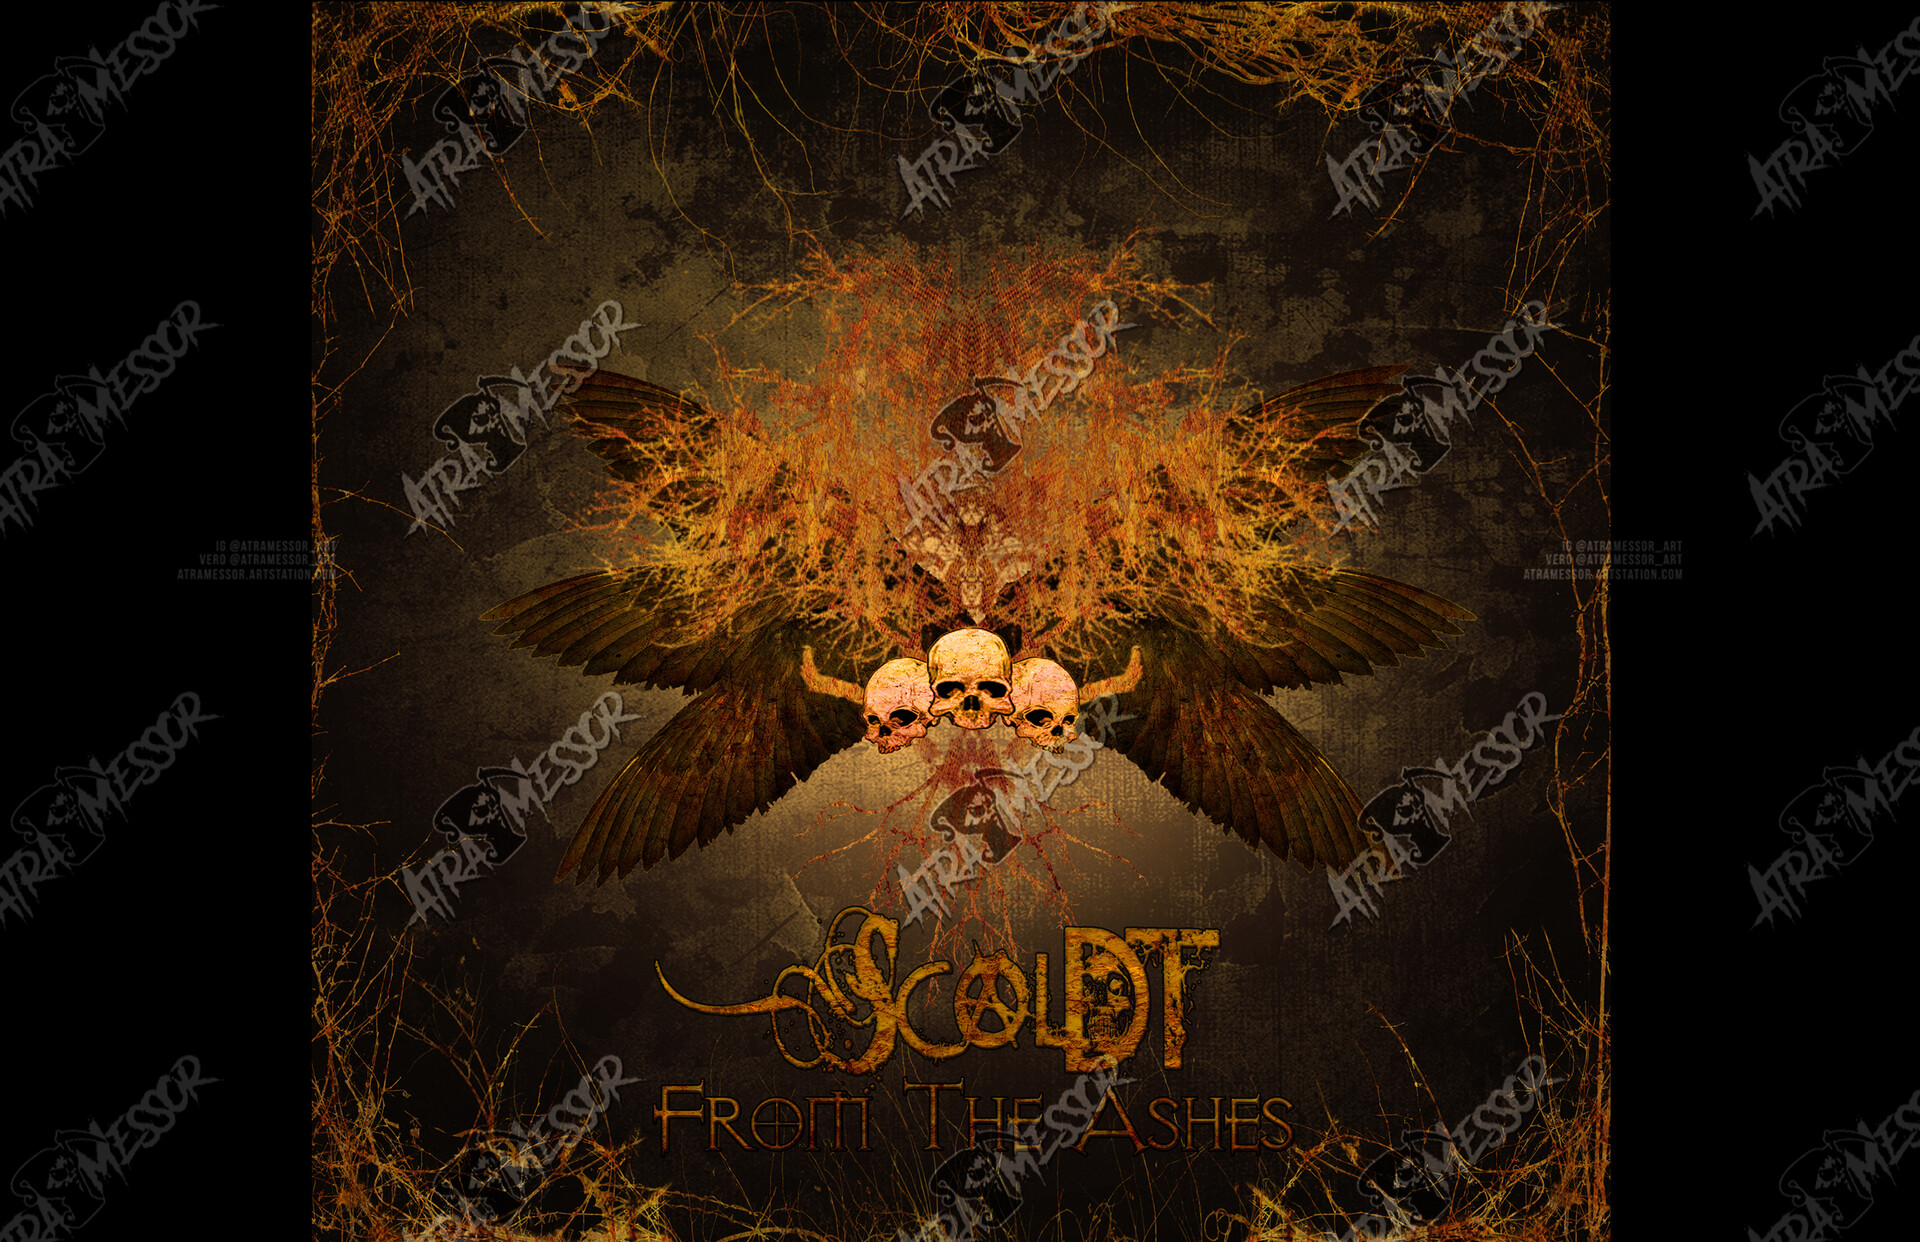 Scoldt From the Ashes Album Art